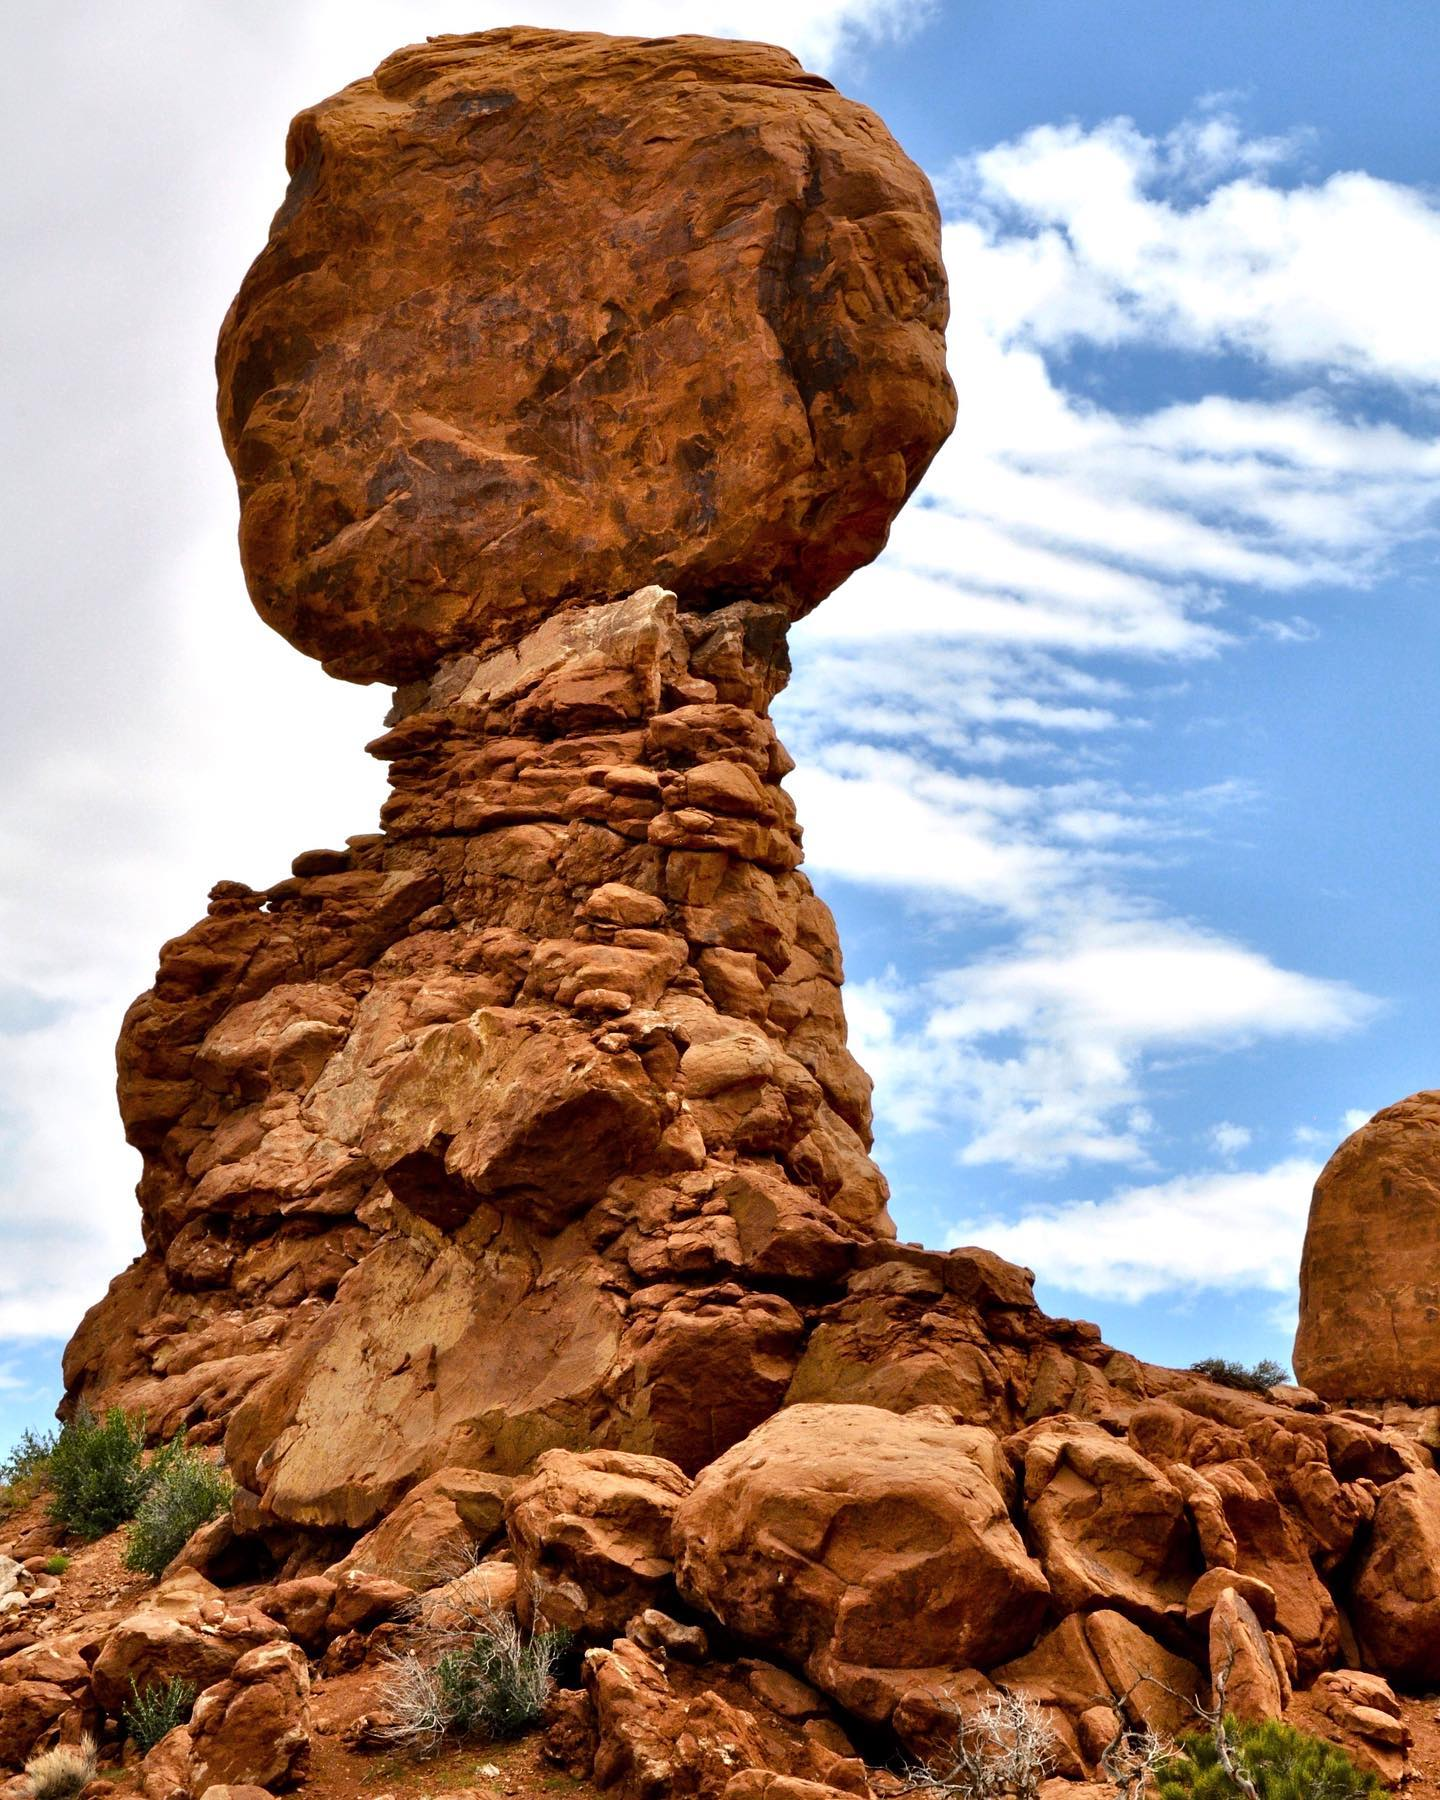 Balanced Rock, Arches NP, Utah A large rock, balanced upon a narrower pedestal of stone beneath it. It's worth to hike (0.3 mi roundtrip) around the rock's base for up-close perspectives.  #usatravel #usatravels #usatrip #usavacation #utah #utahunique #utah #utahgram #ig_usa #ig_utah #onlyinutah #balancedrock #archesnationalpark #archesnps #nature #naturelovers #nature_perfection #naturephoto #exploremore #postcardsfromtheworld #exploreutah #rockformation #picoftheday #passionpassport #travelinspiration #goexplore #travelstoke #travelgrams #wanderlust #optoutside #utahadventures